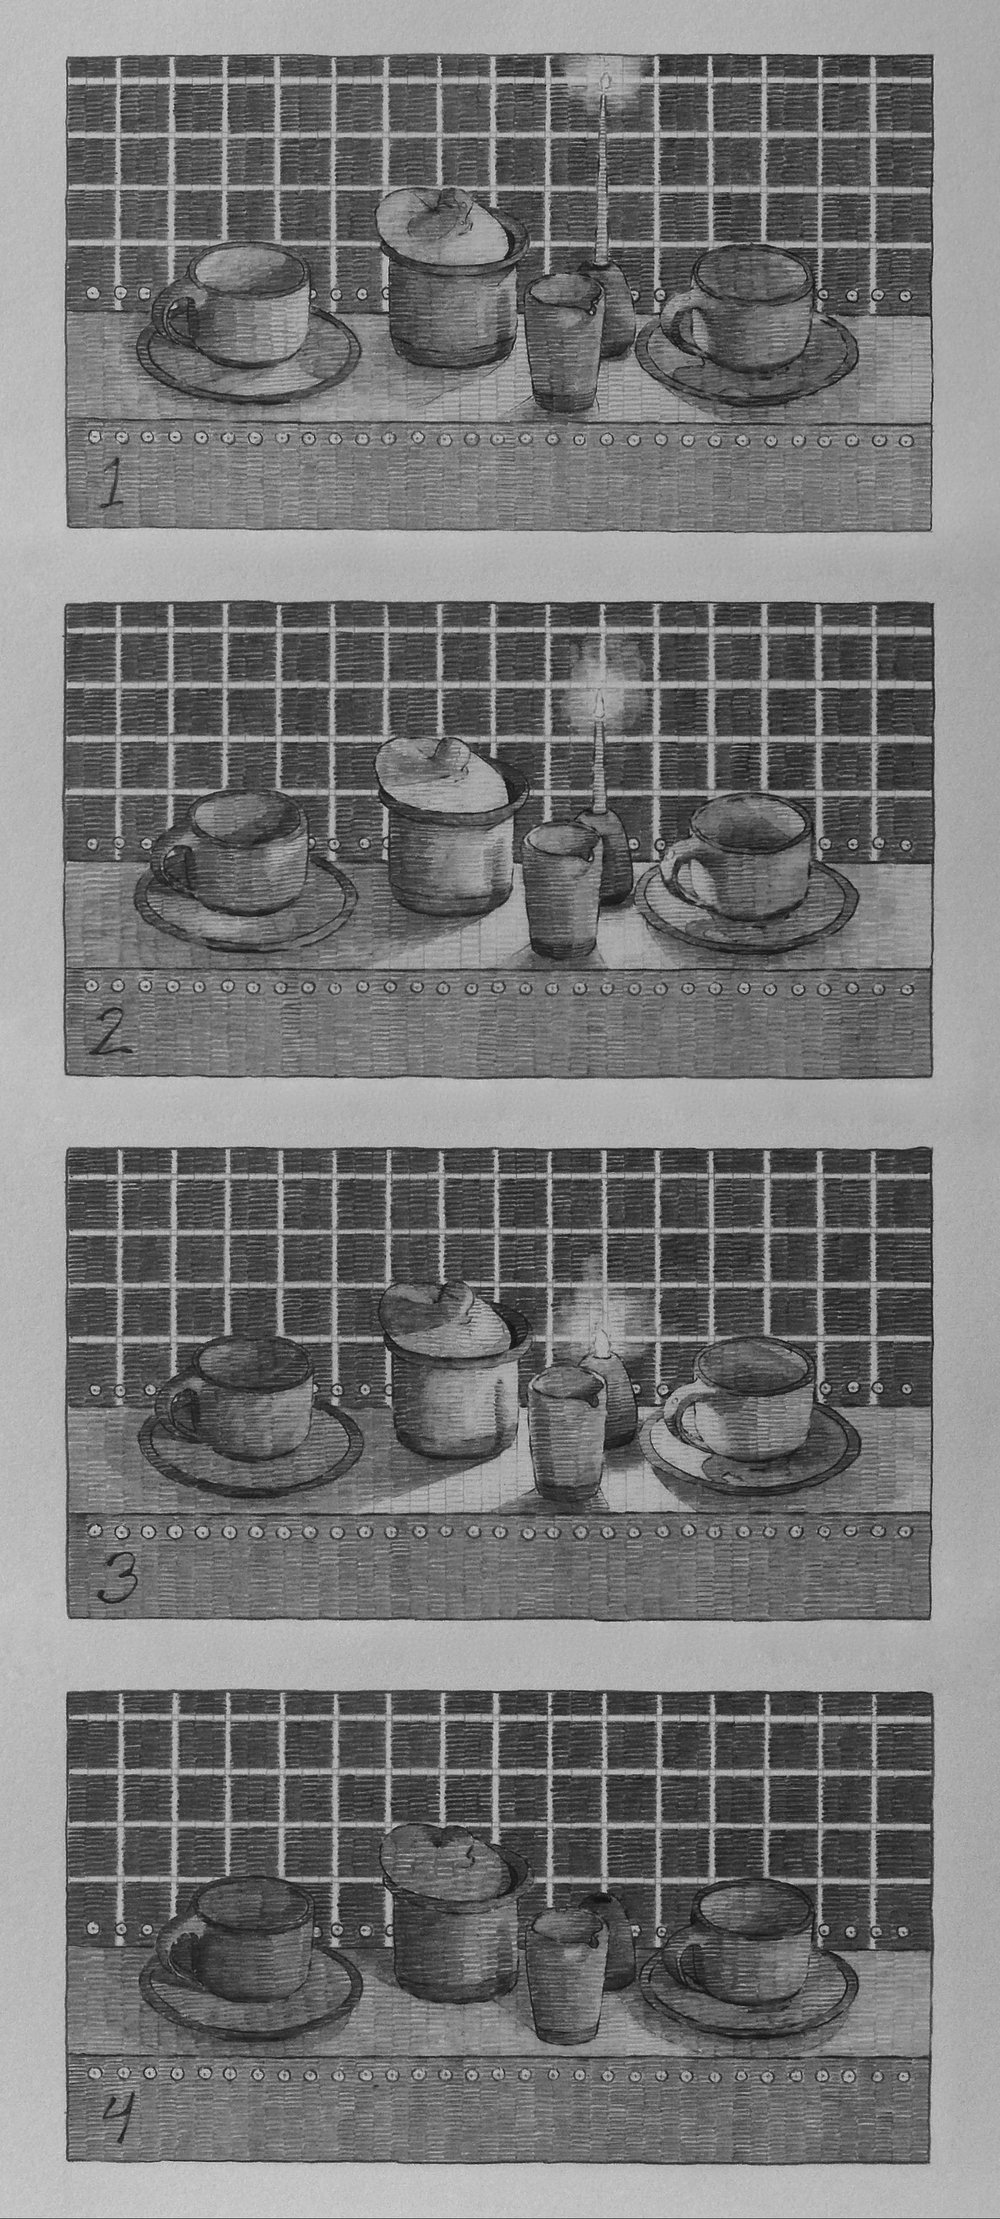 Sequence 5., Arranged